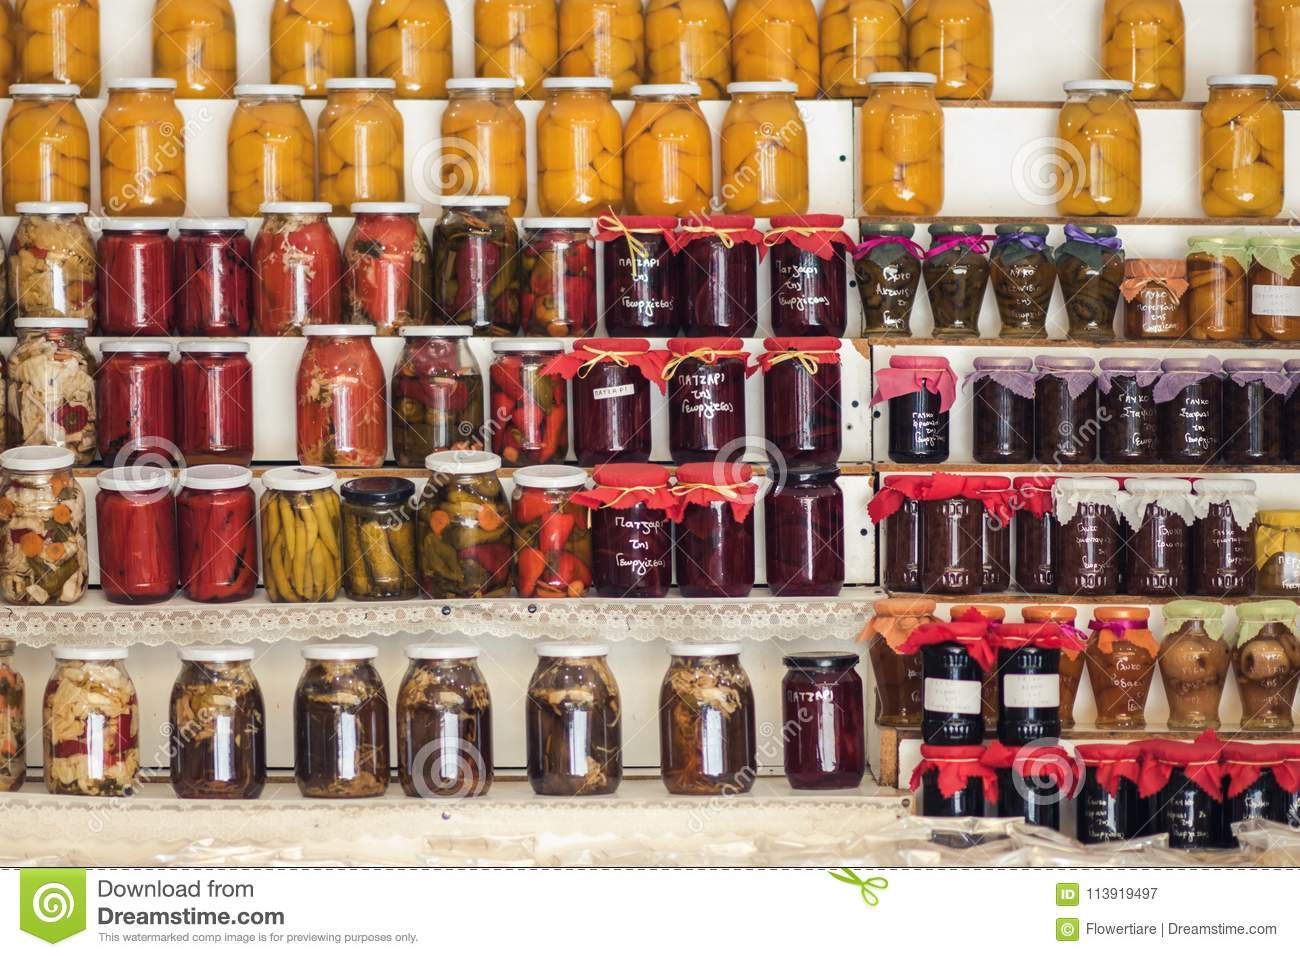 Greek Homemade Jam And Canned Food On The Shelves Of Local